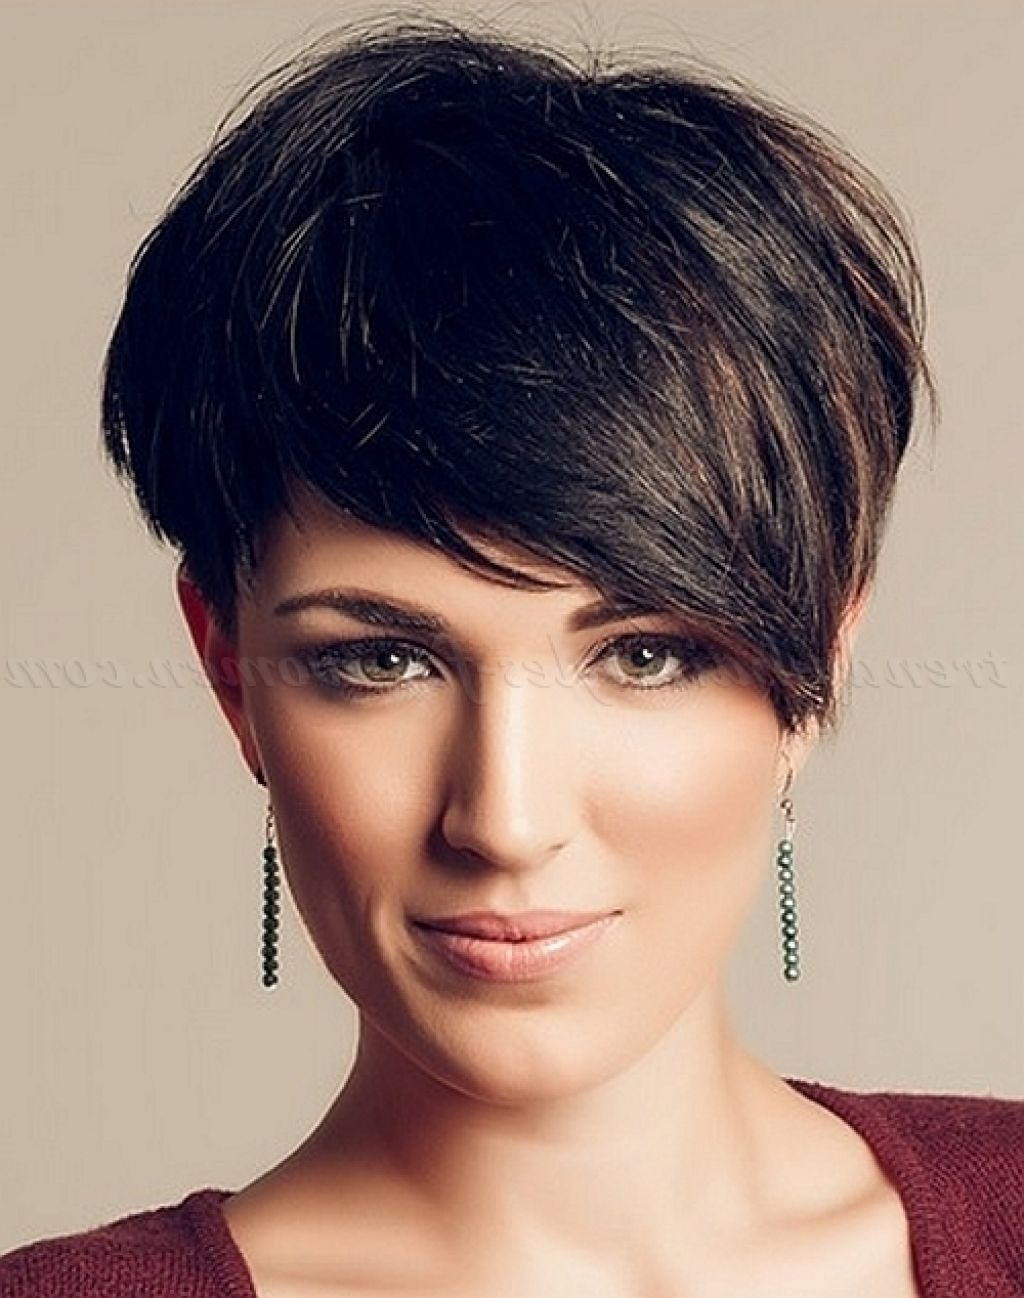 Image Result For Asymmetrical Short Haircuts Look Pinterest